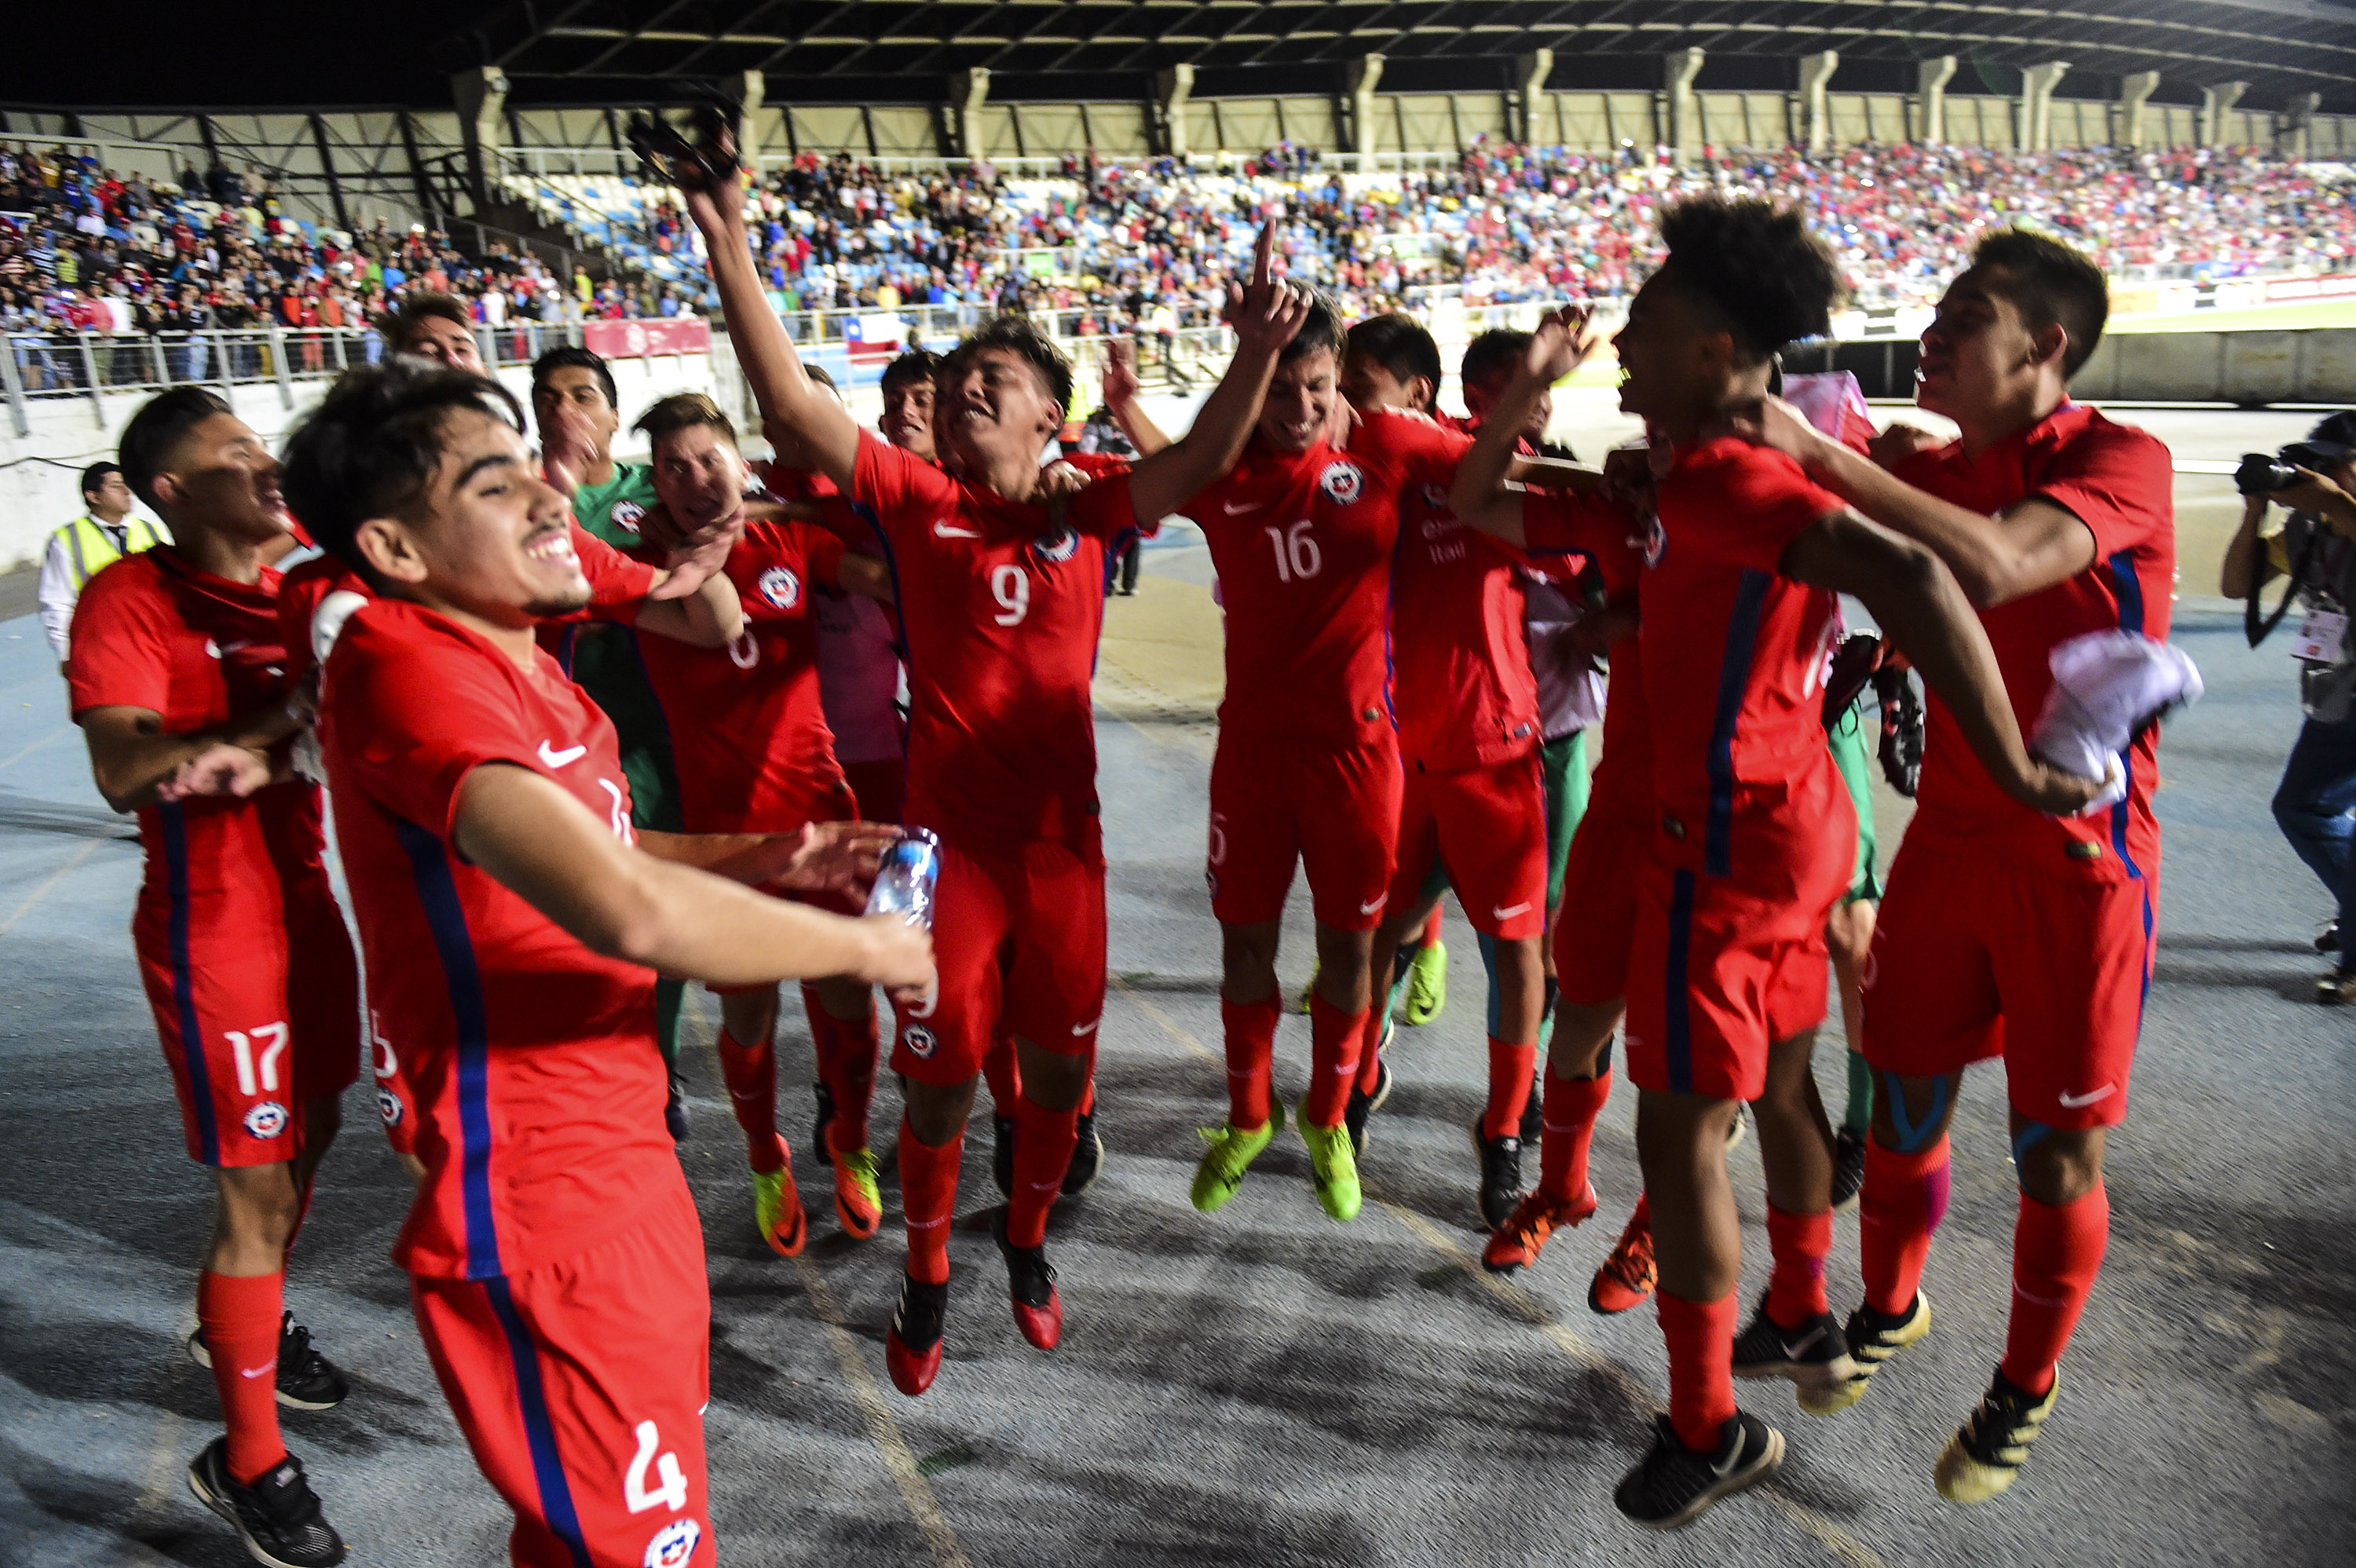 Chile U17 2017 South American Under-17 Football Championship